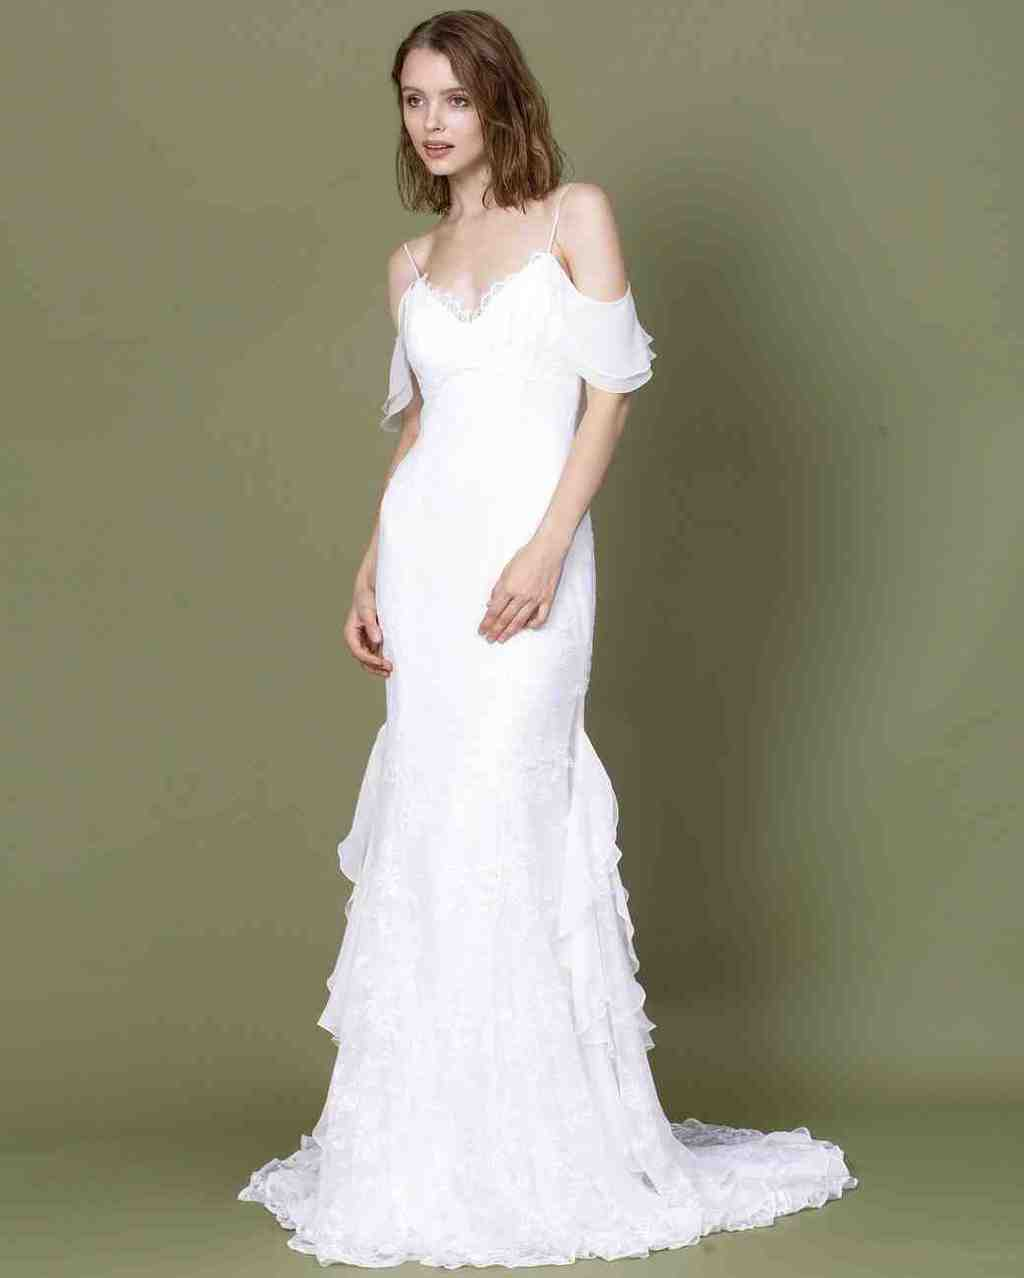 amsale-christos-fall2017-wedding-dress-007_vert